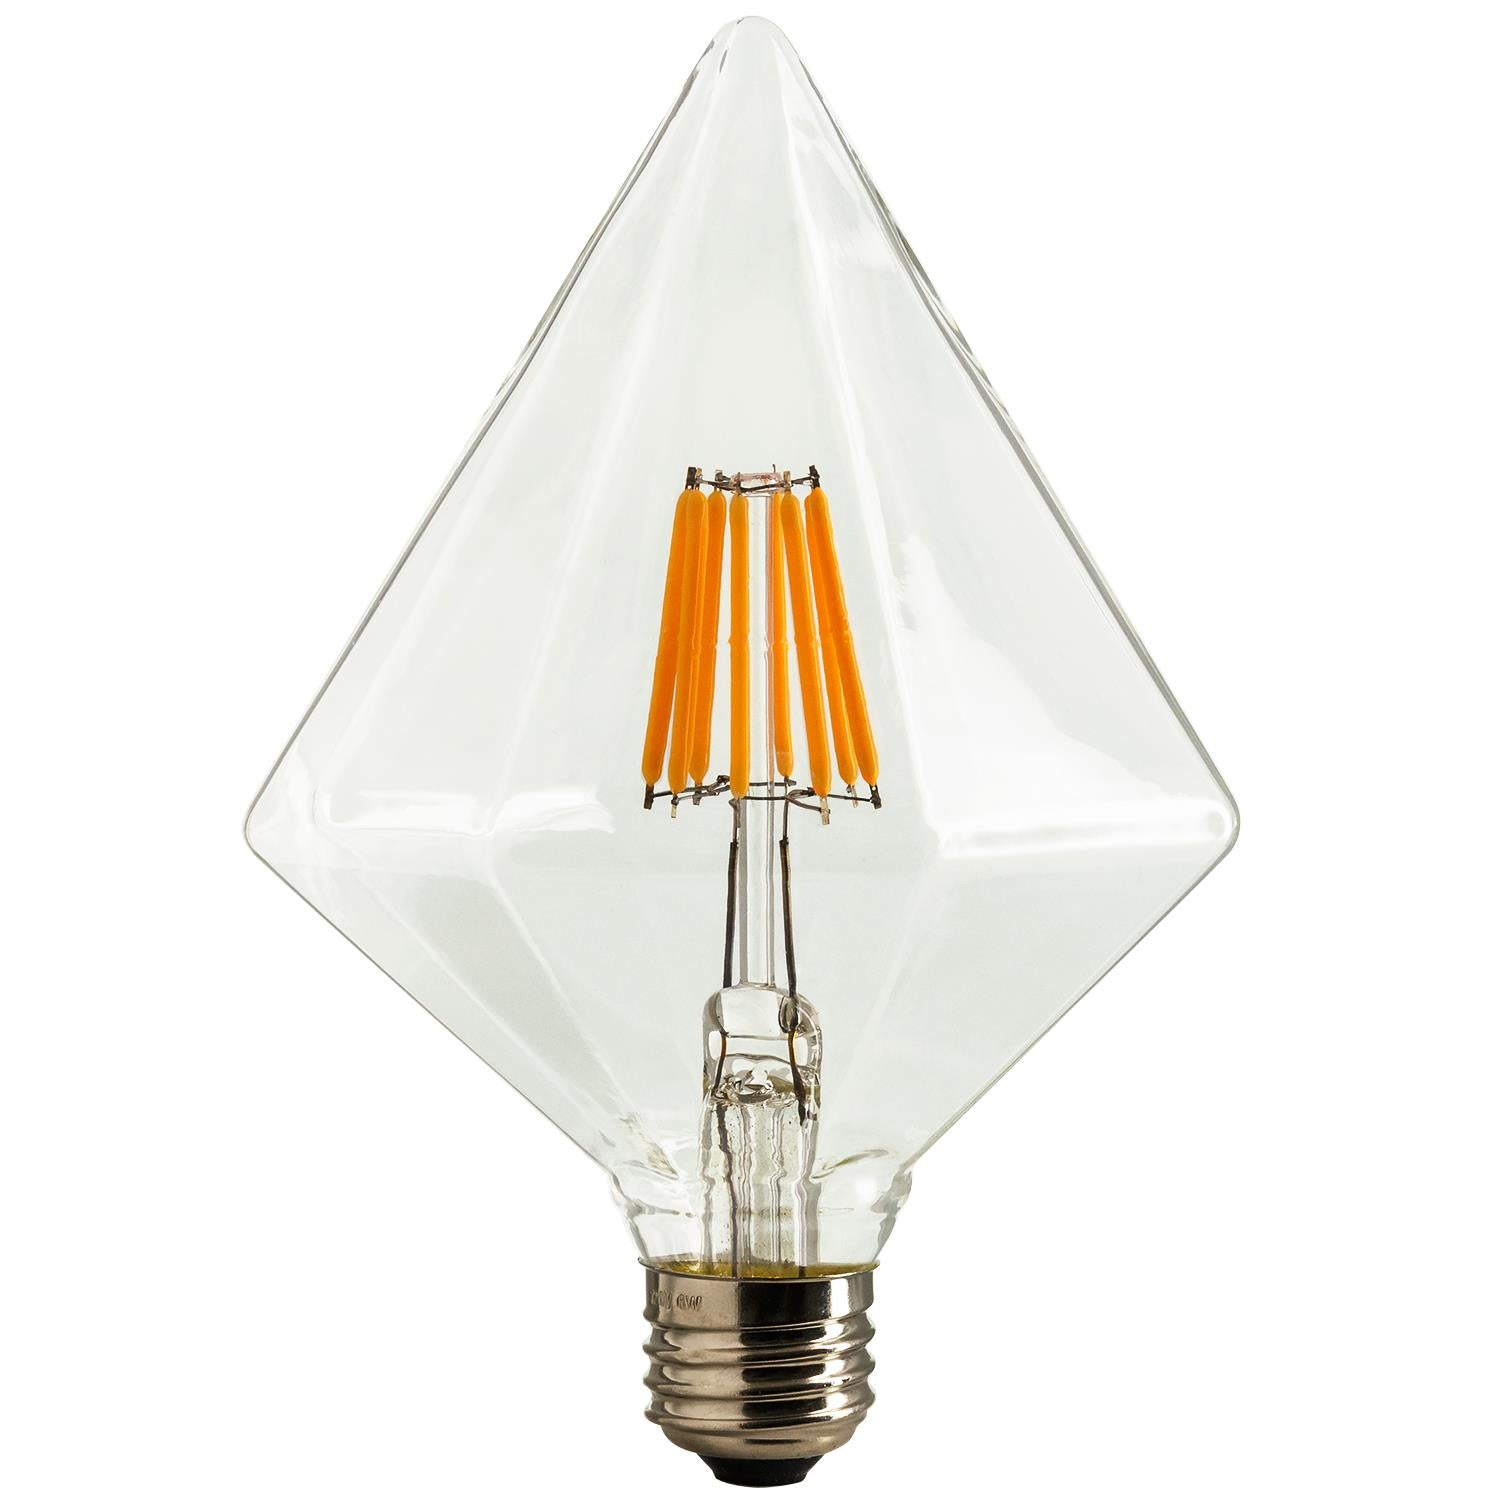 SUNLITE 80469-SU LED Vintage Diamond 6w Light Bulb Medium (E26) Base Warm White